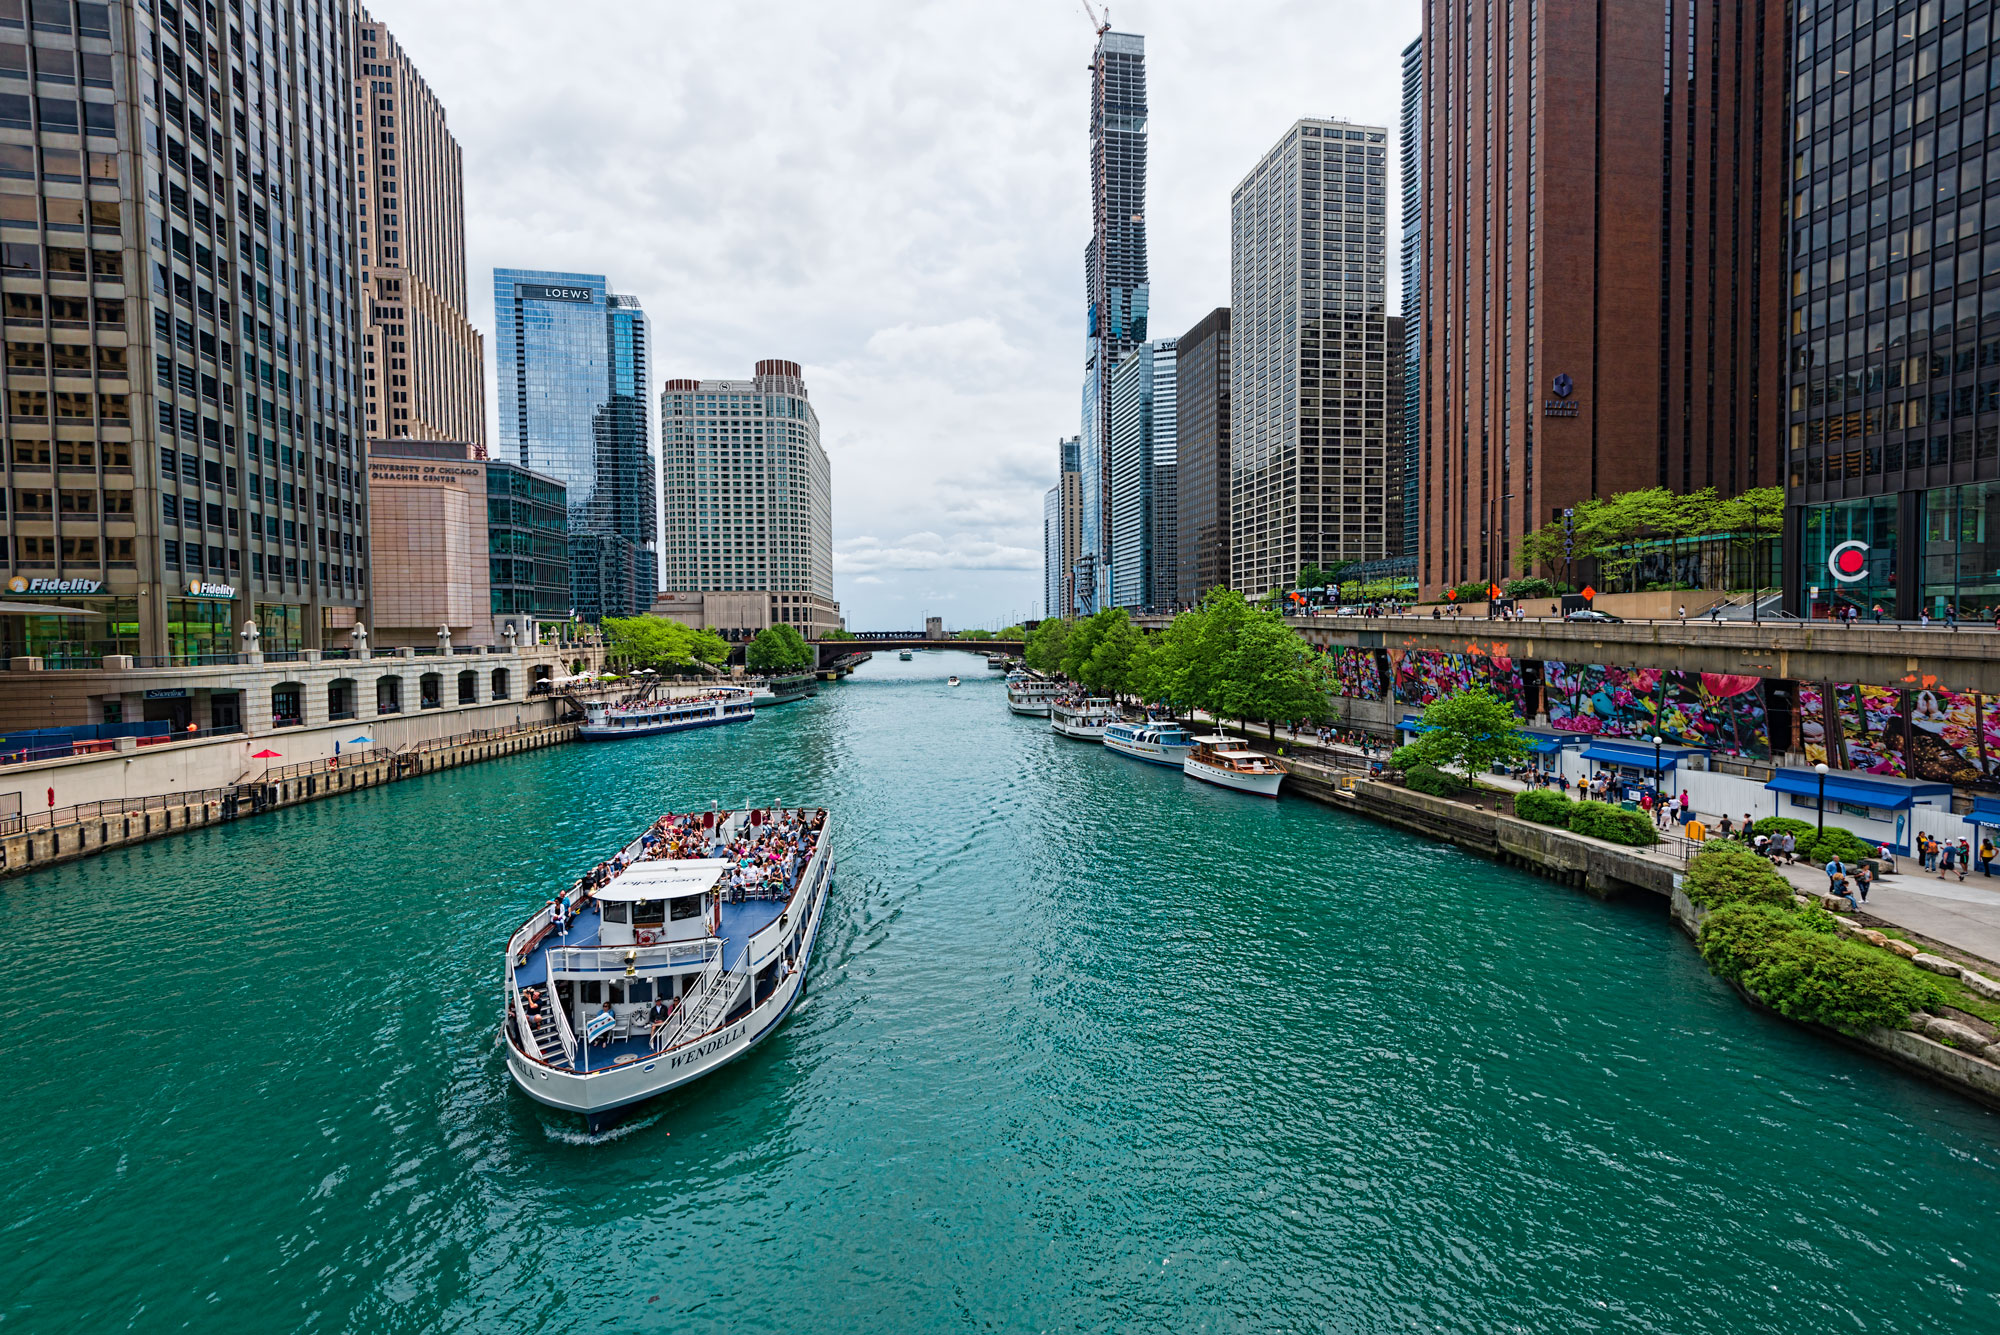 Chicago river cruise on a cloudy day